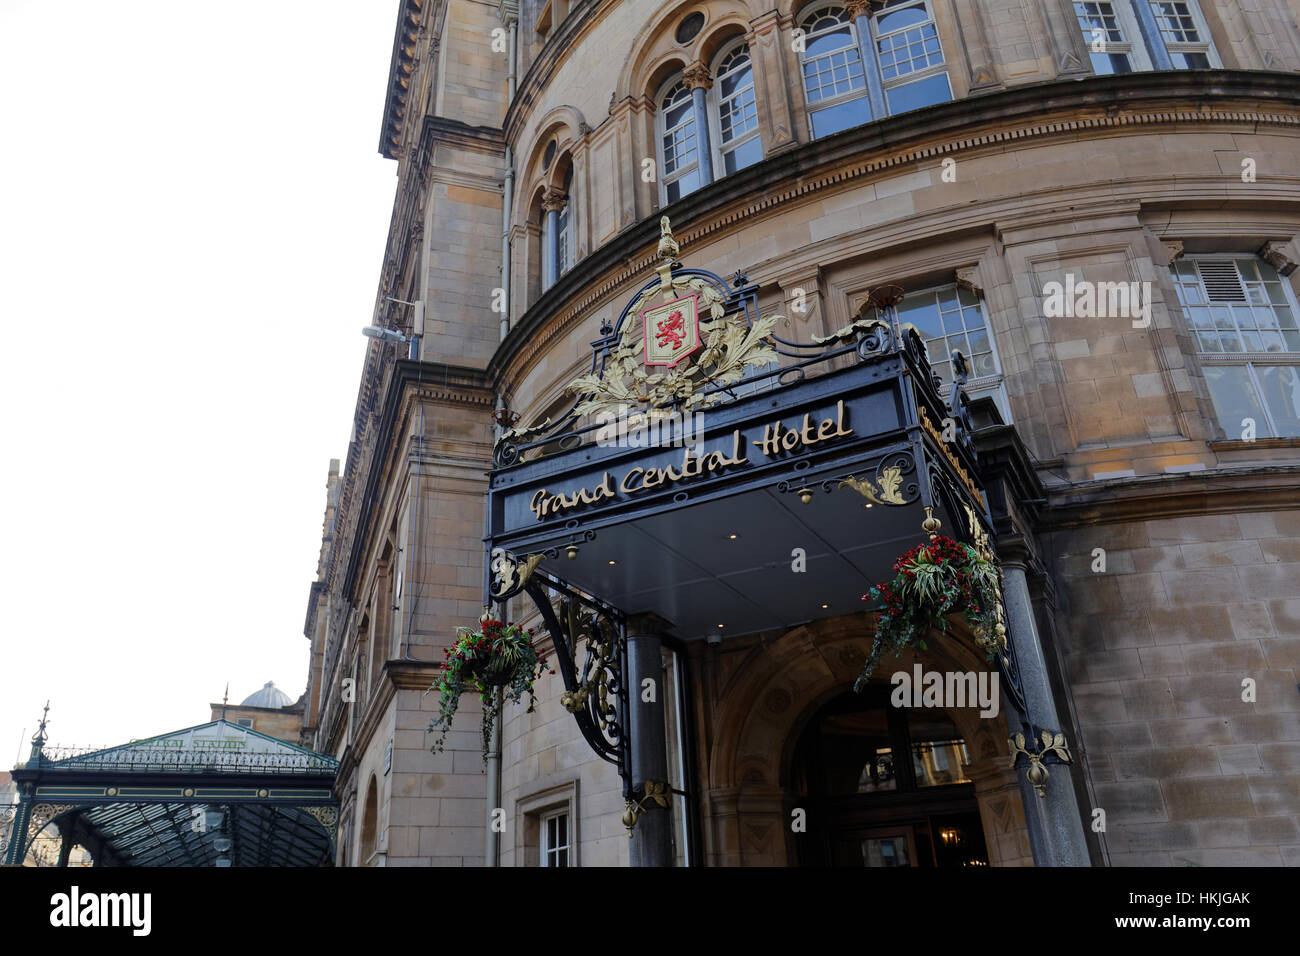 Grand Central Hotel Glasgow station entrance motel - Stock Image